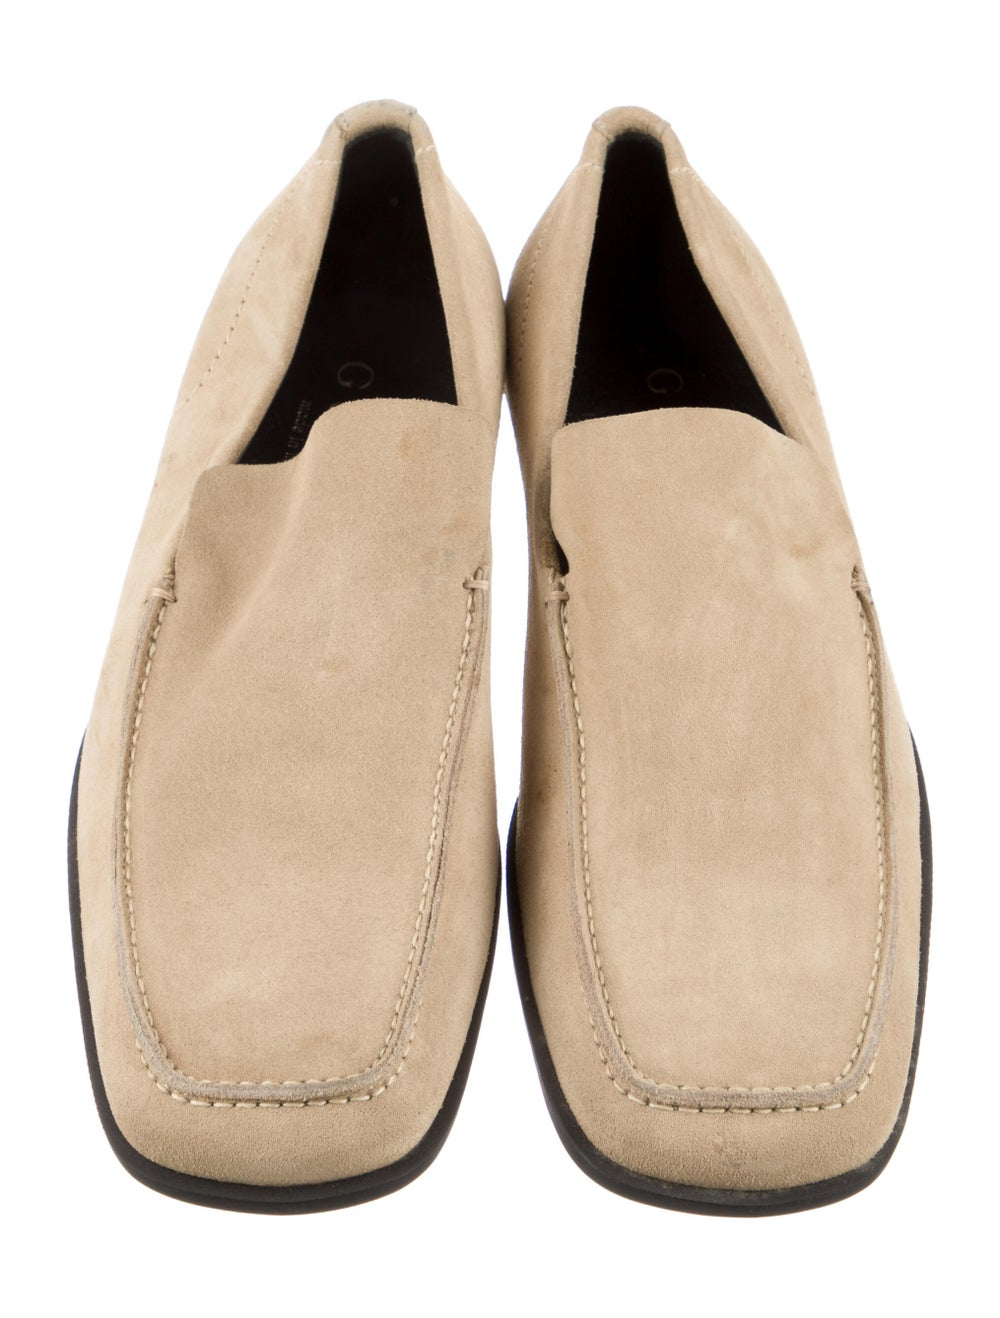 Gucci Suede Loafers - image 3